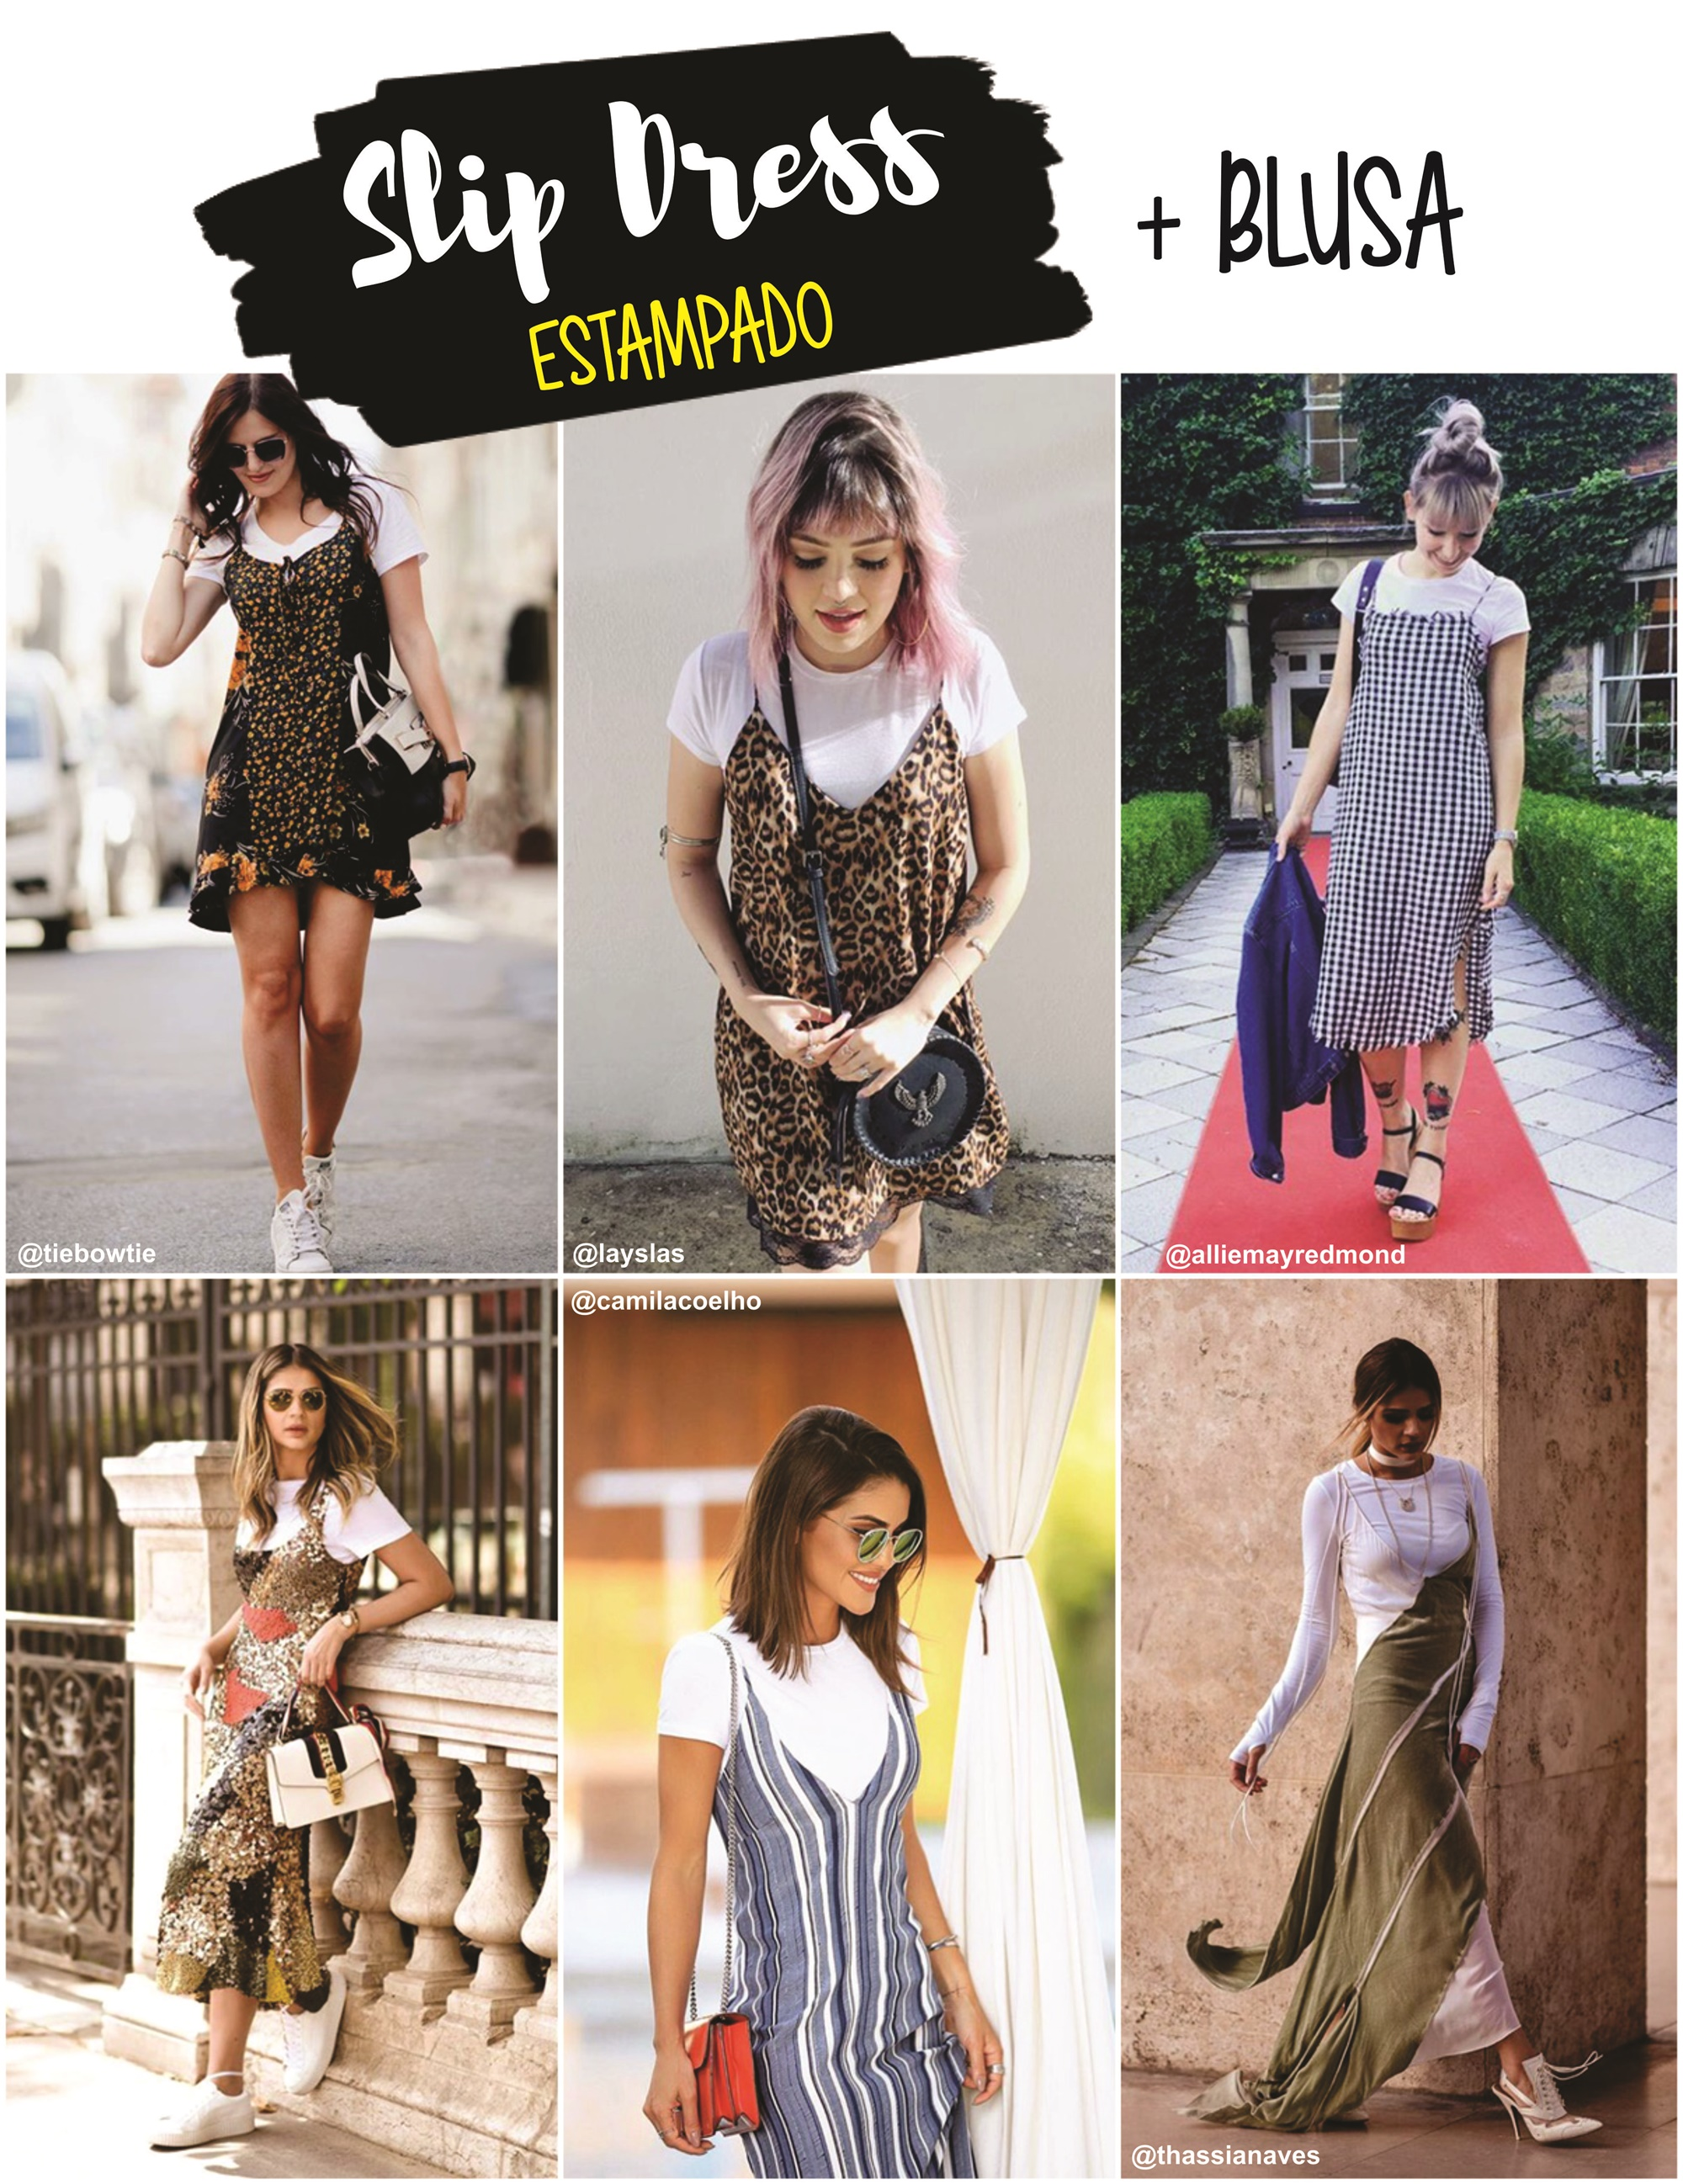 Slip dress estampado E COM BLUSA